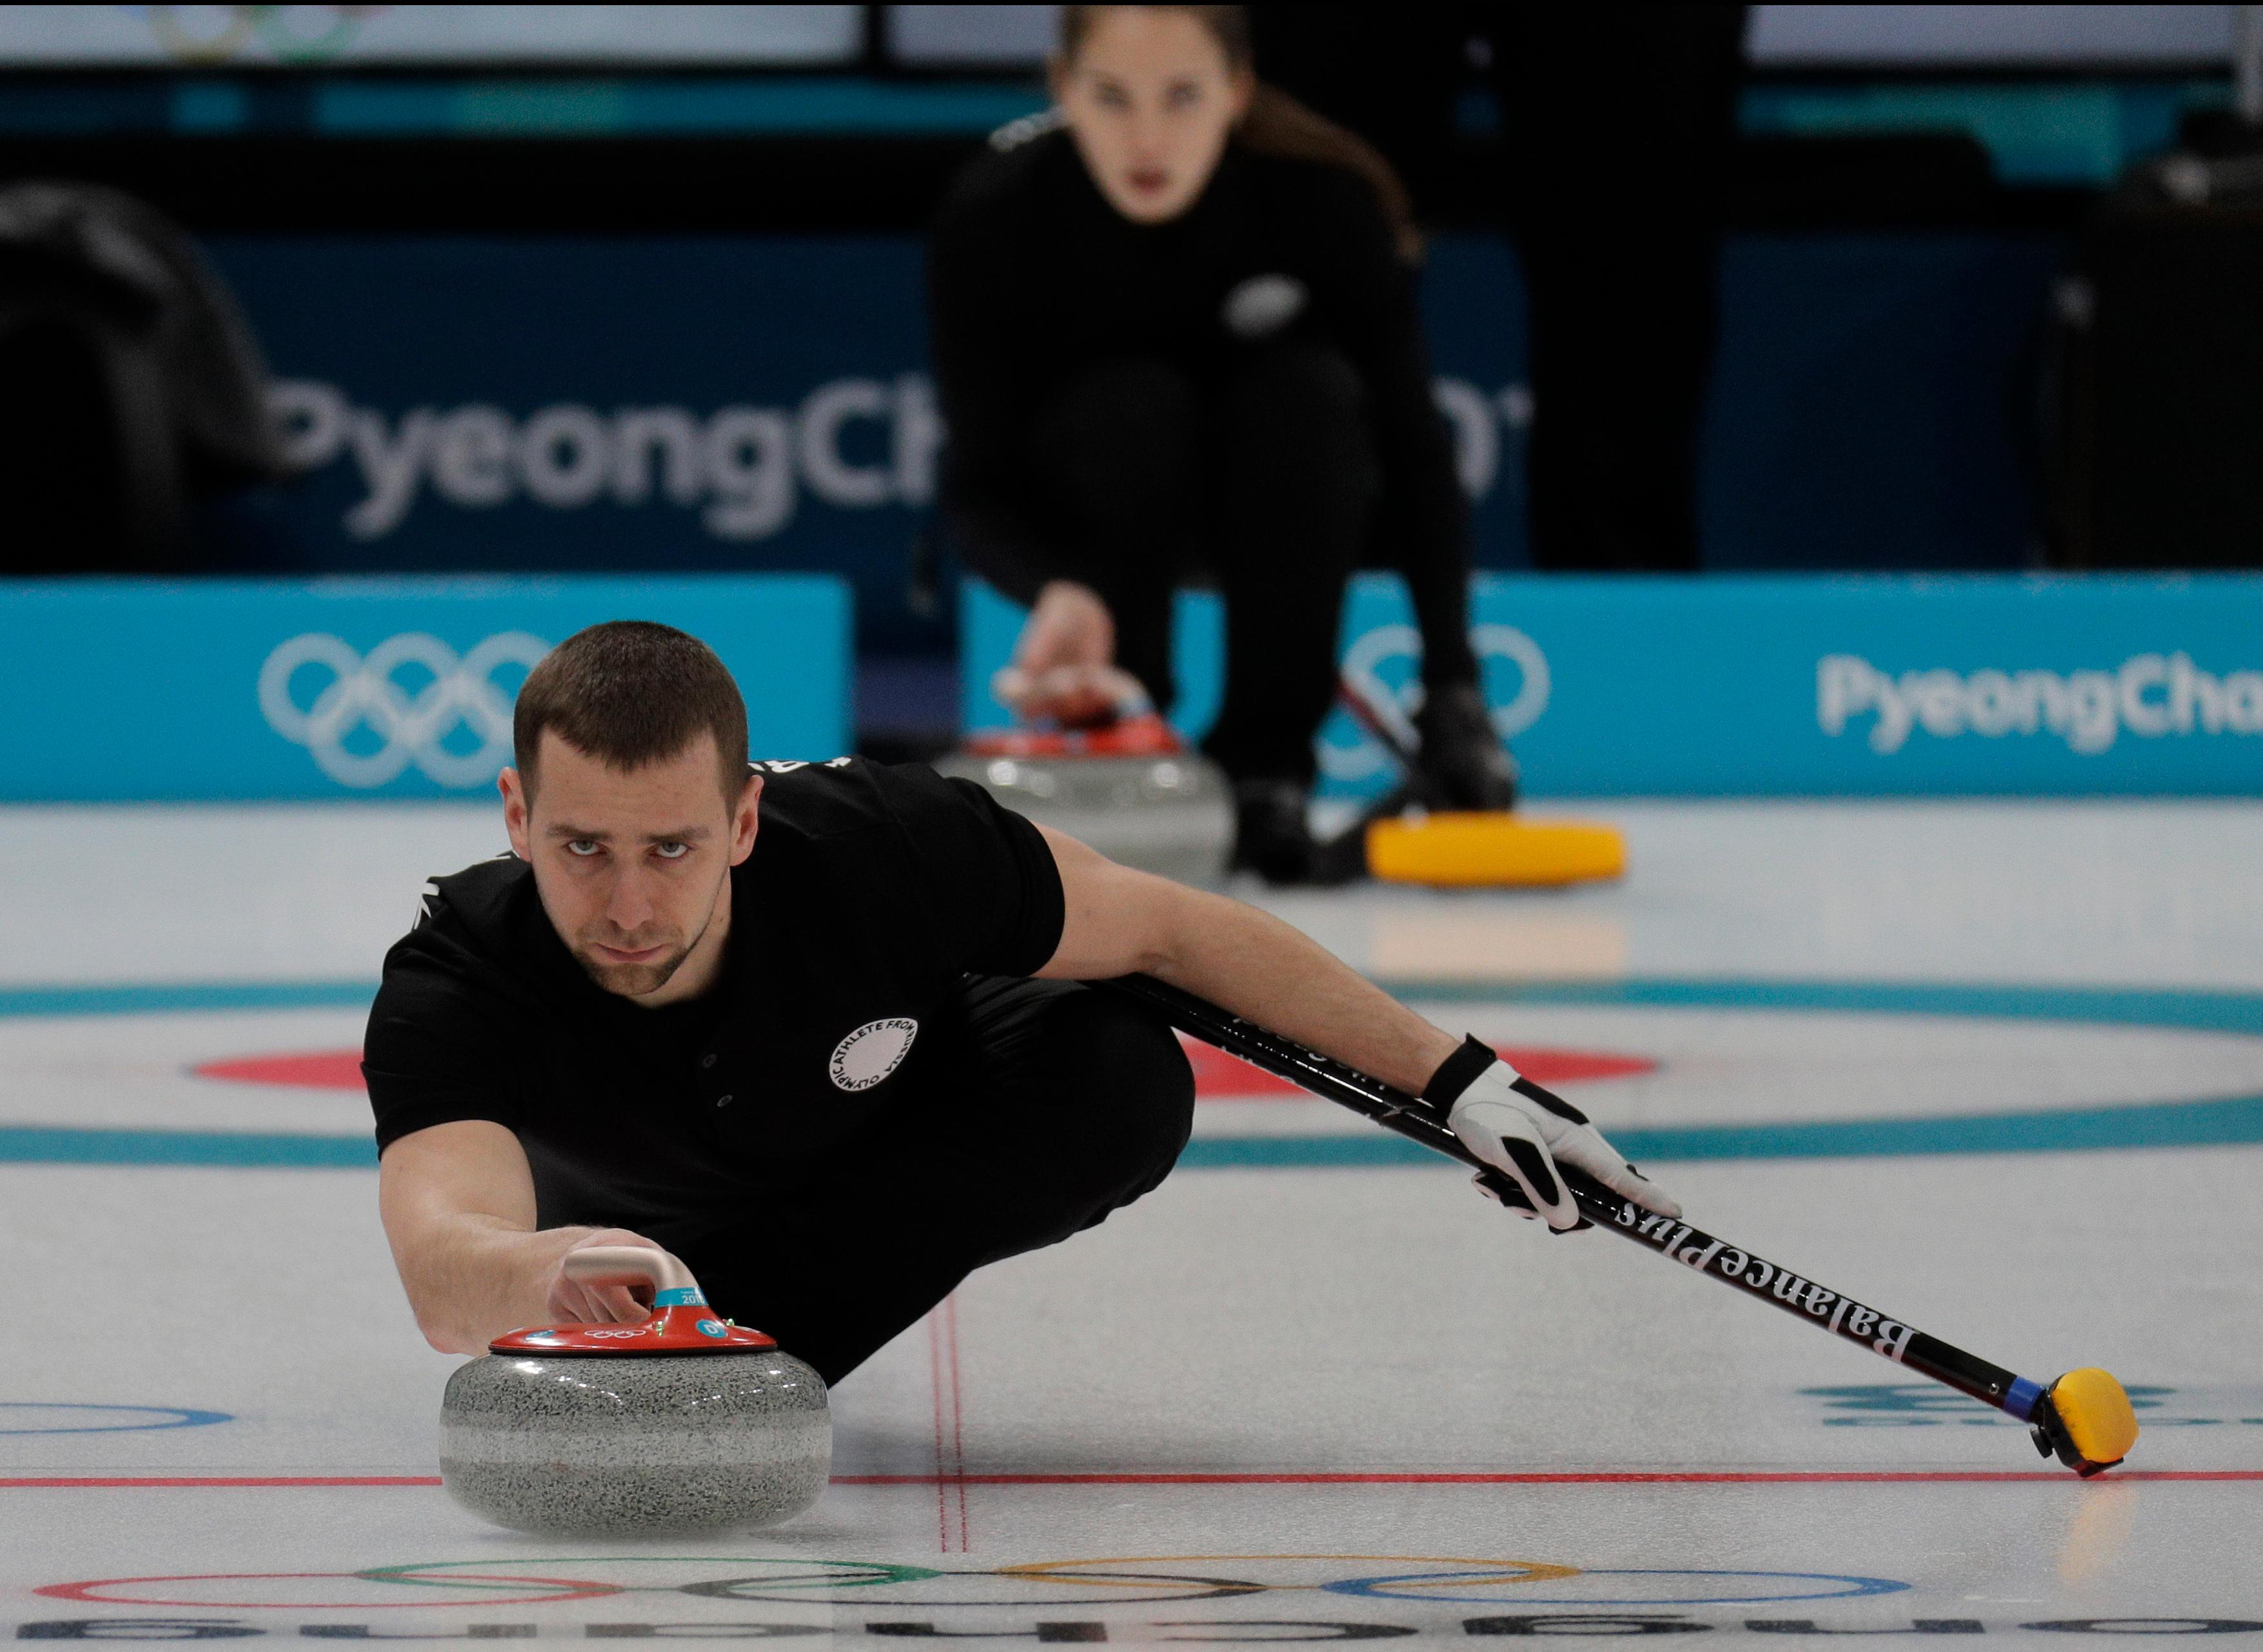 Olympic Athlete from Russia Aleksandr Krushelnitckii plactice ahead of the 2018 Winter Olympics in Gangneung, South Korea, Wednesday, Feb. 7, 2018. (AP Photo/Aaron Favila)